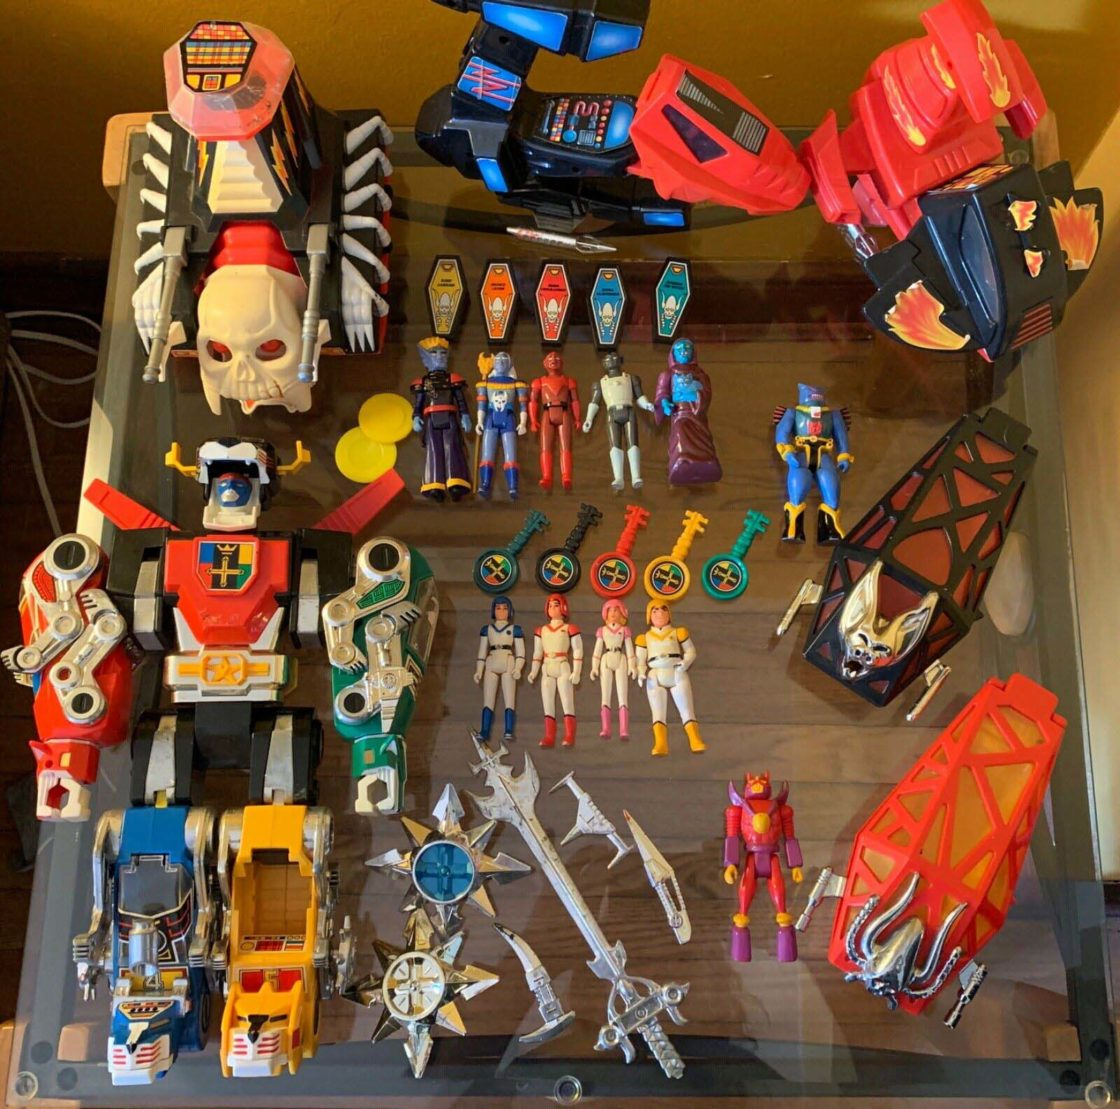 Voltron Vehicles and Figures